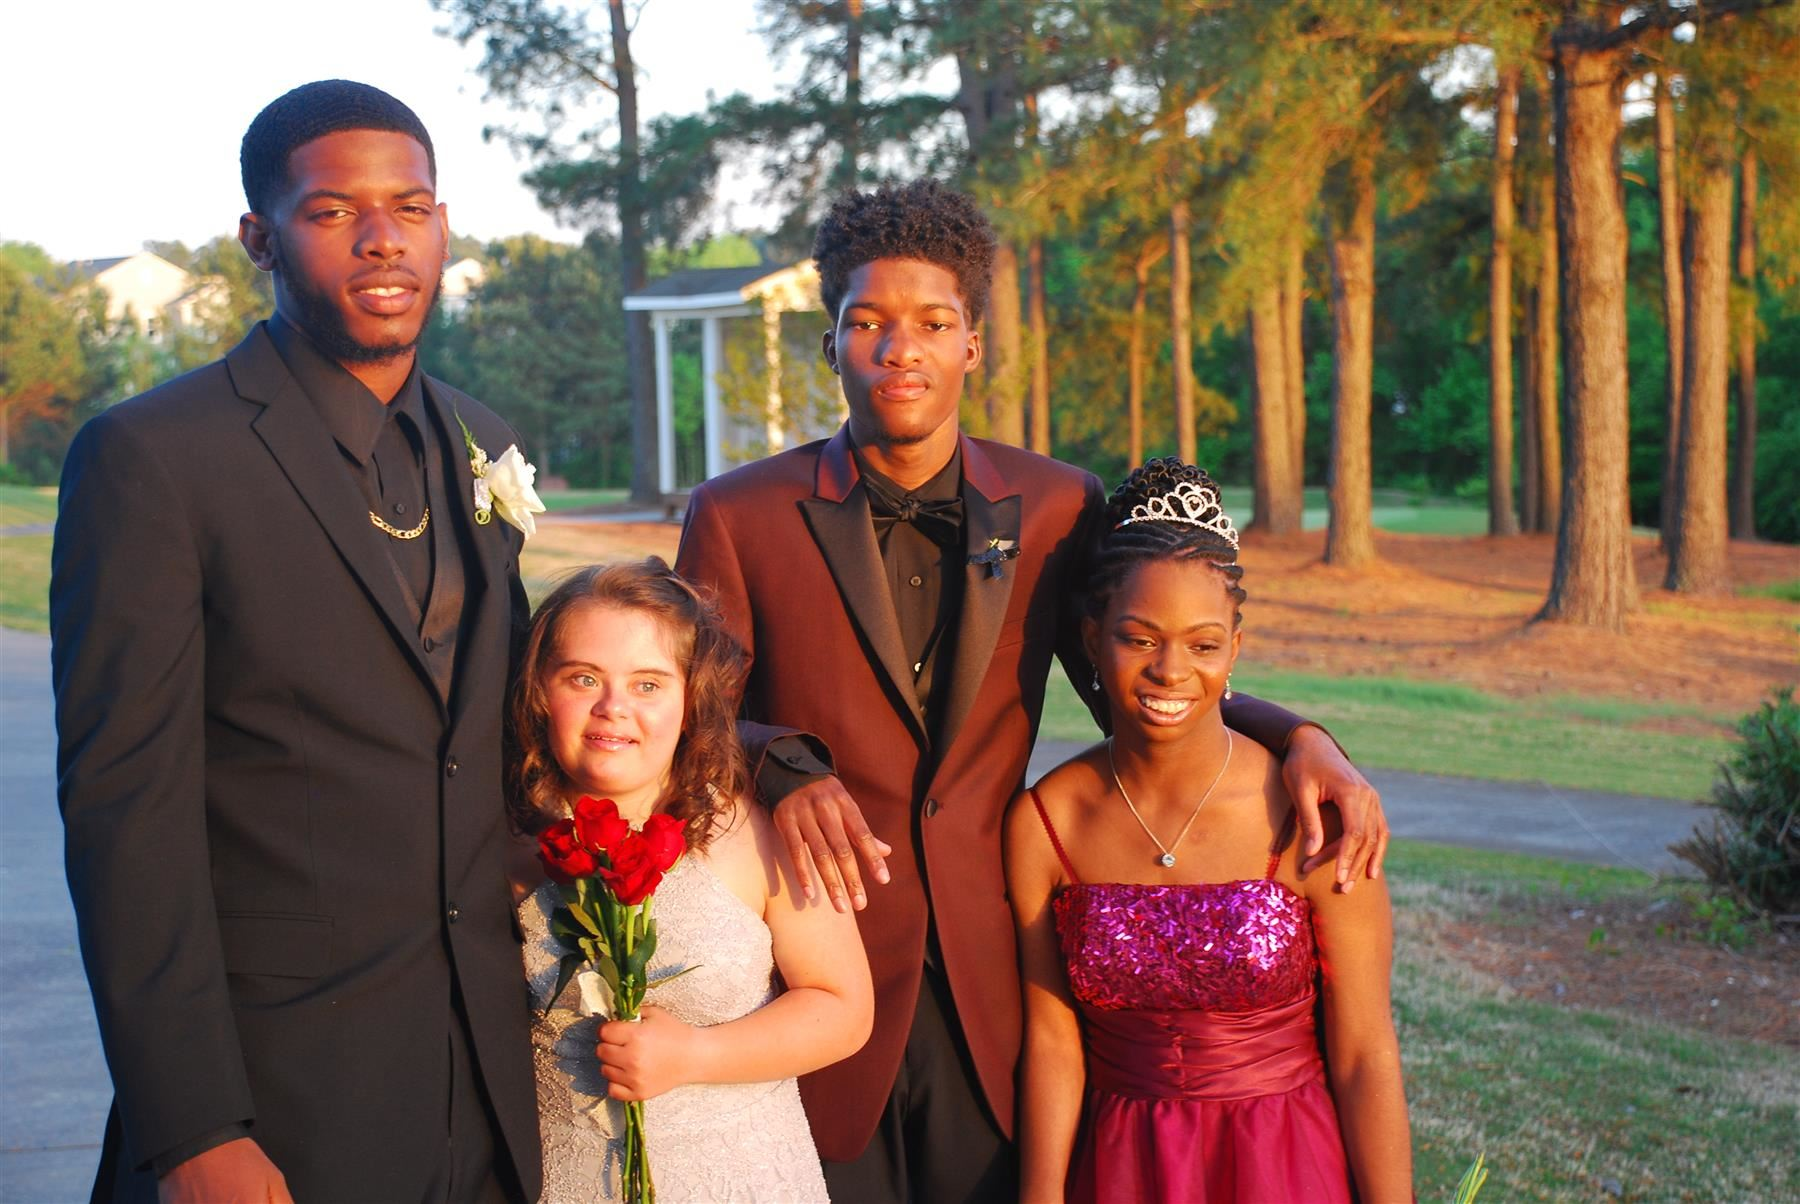 Four students ready to go to prom.